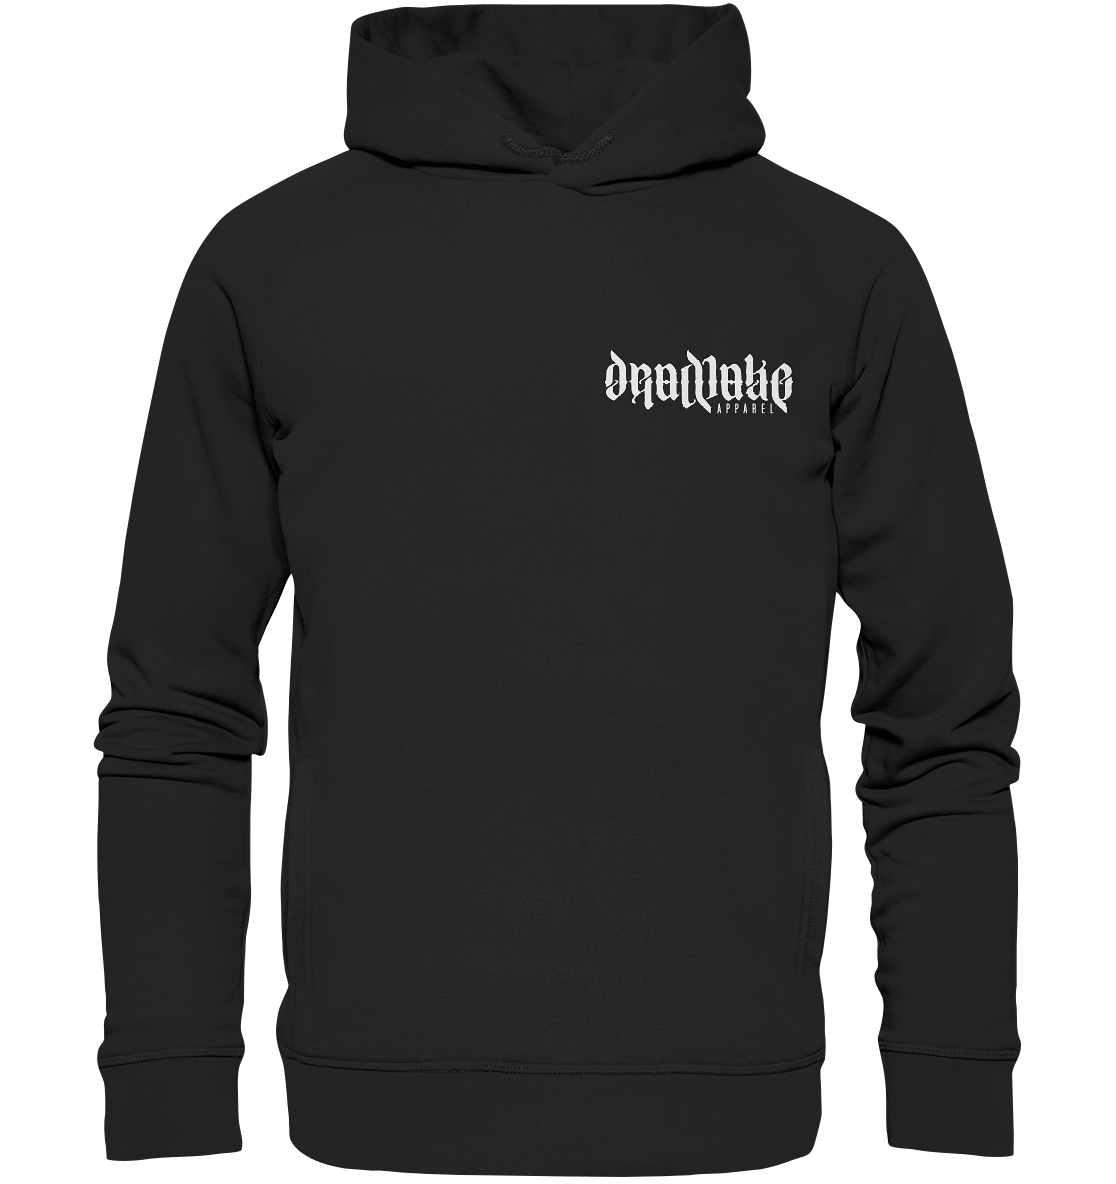 front-organic-fashion-hoodie-272727-1116x.png